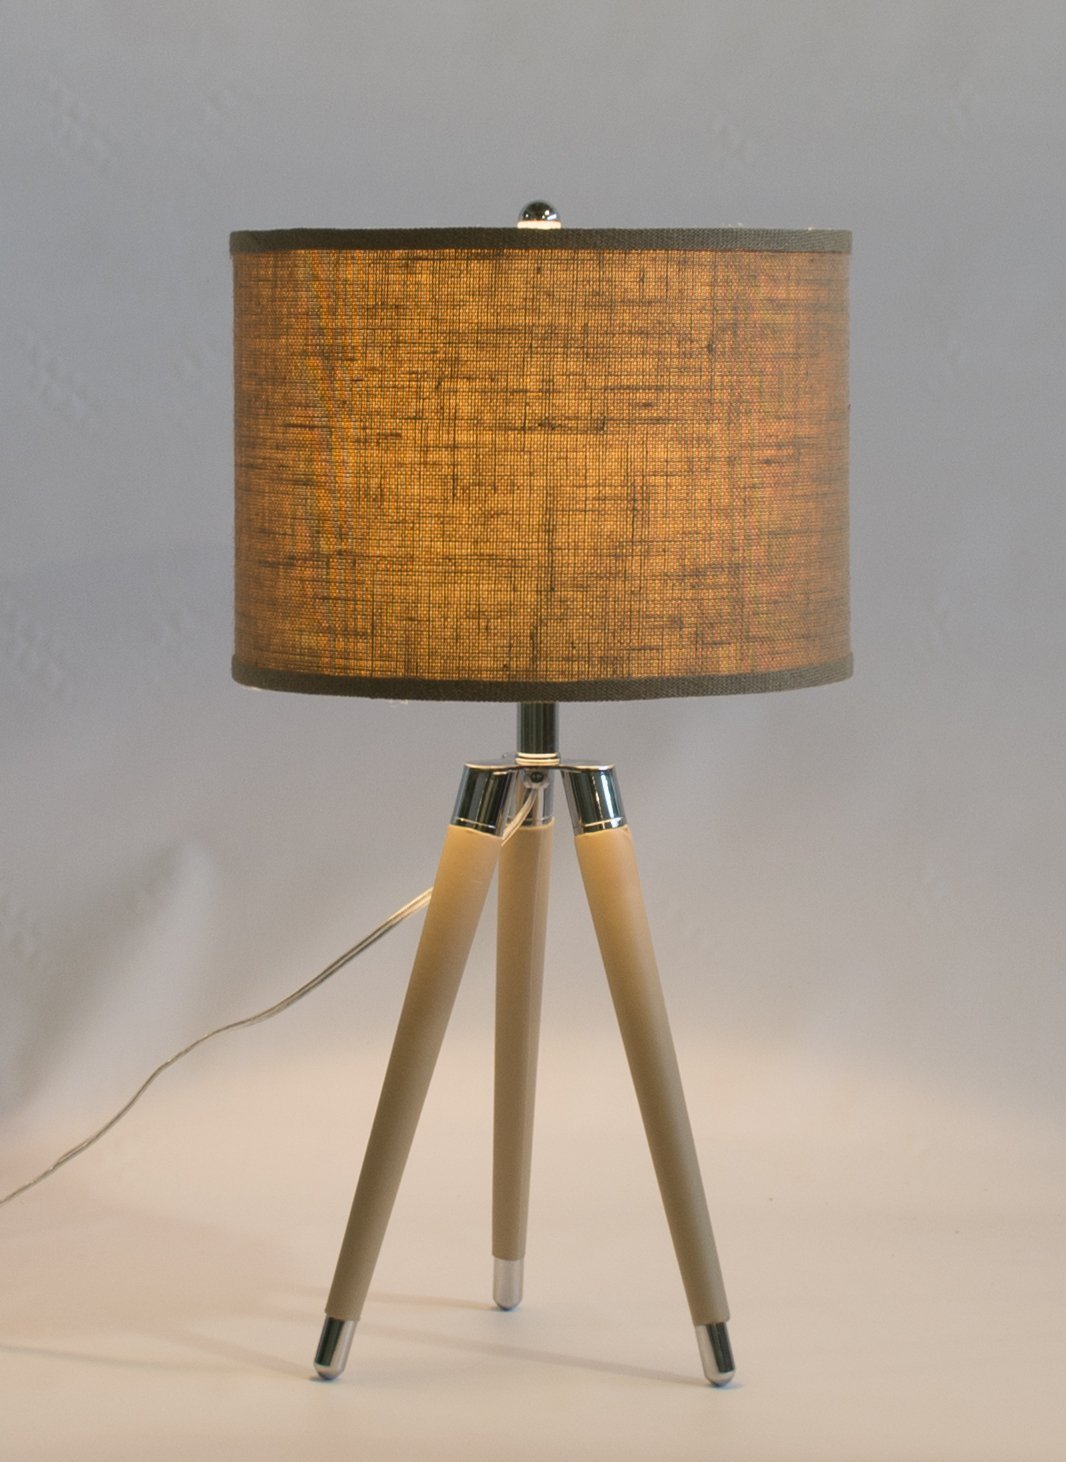 Tan Mid Century Modern Tripod Leather & Chrome Table Lamp with Drum Hardback Shade